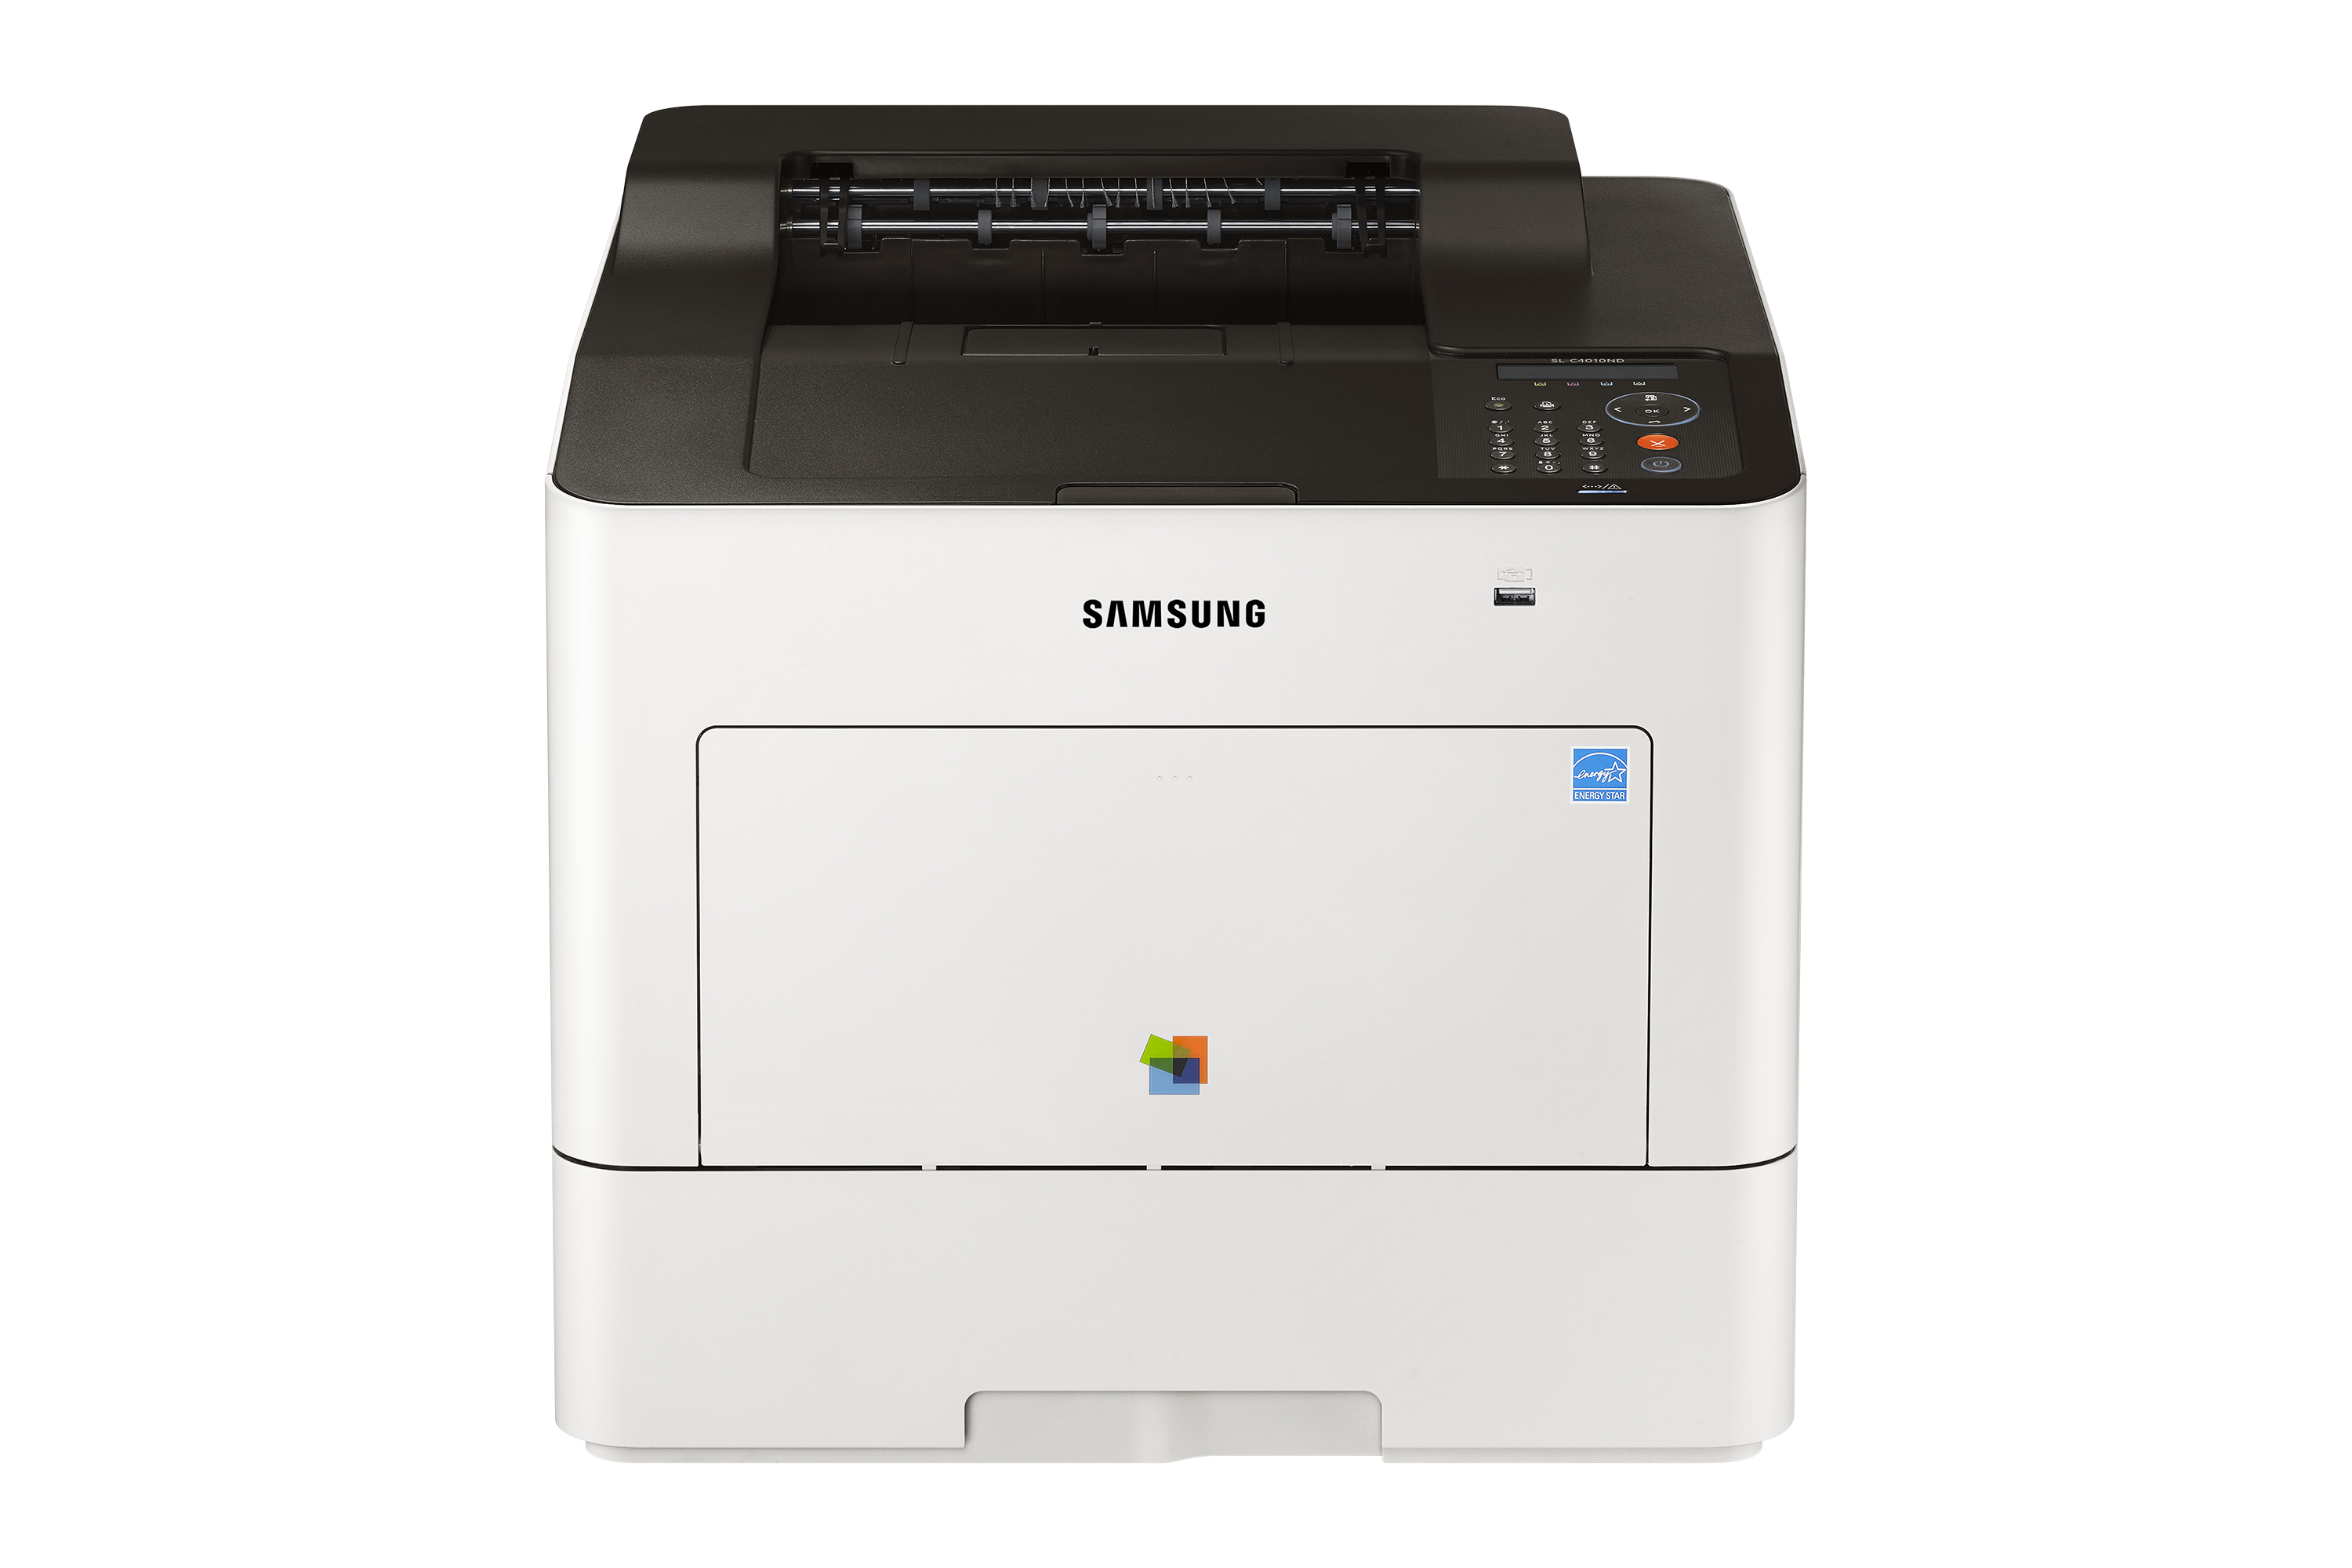 Samsung C4010nd Image.png